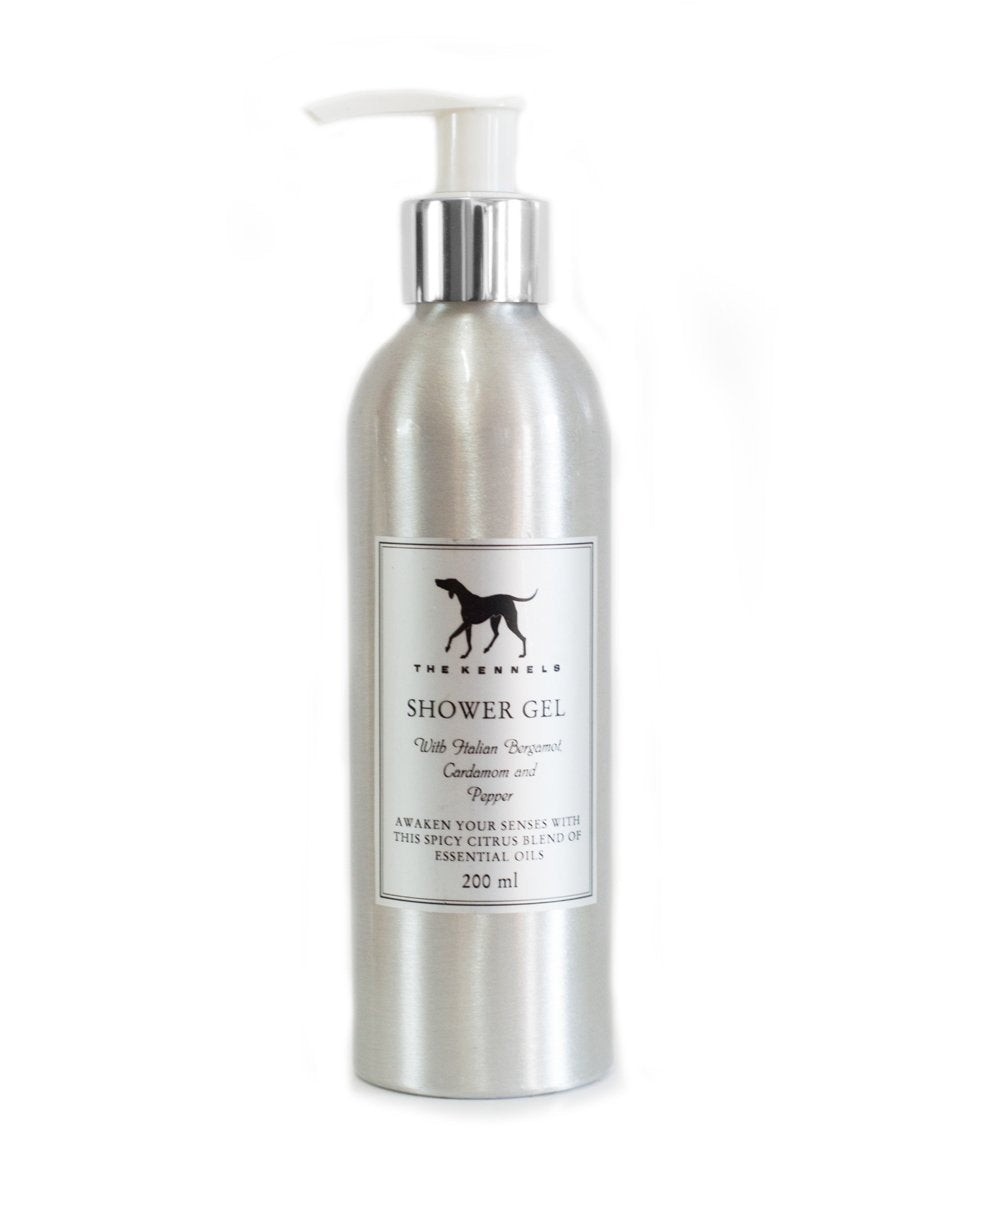 Goodwood Kennels Italian Bergamot Cardamom Pepper Shower Gel